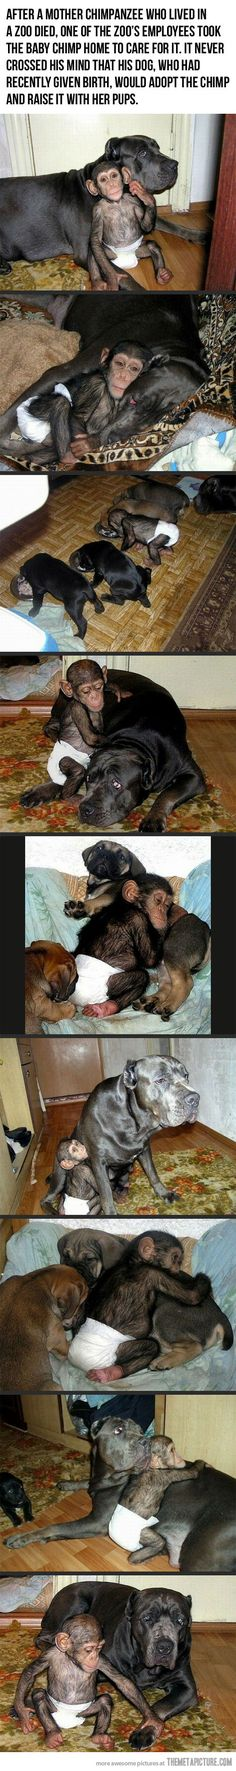 amazing capacity for love, tenderness, affection, devotion between all species!!! honor them all & protect them!!!